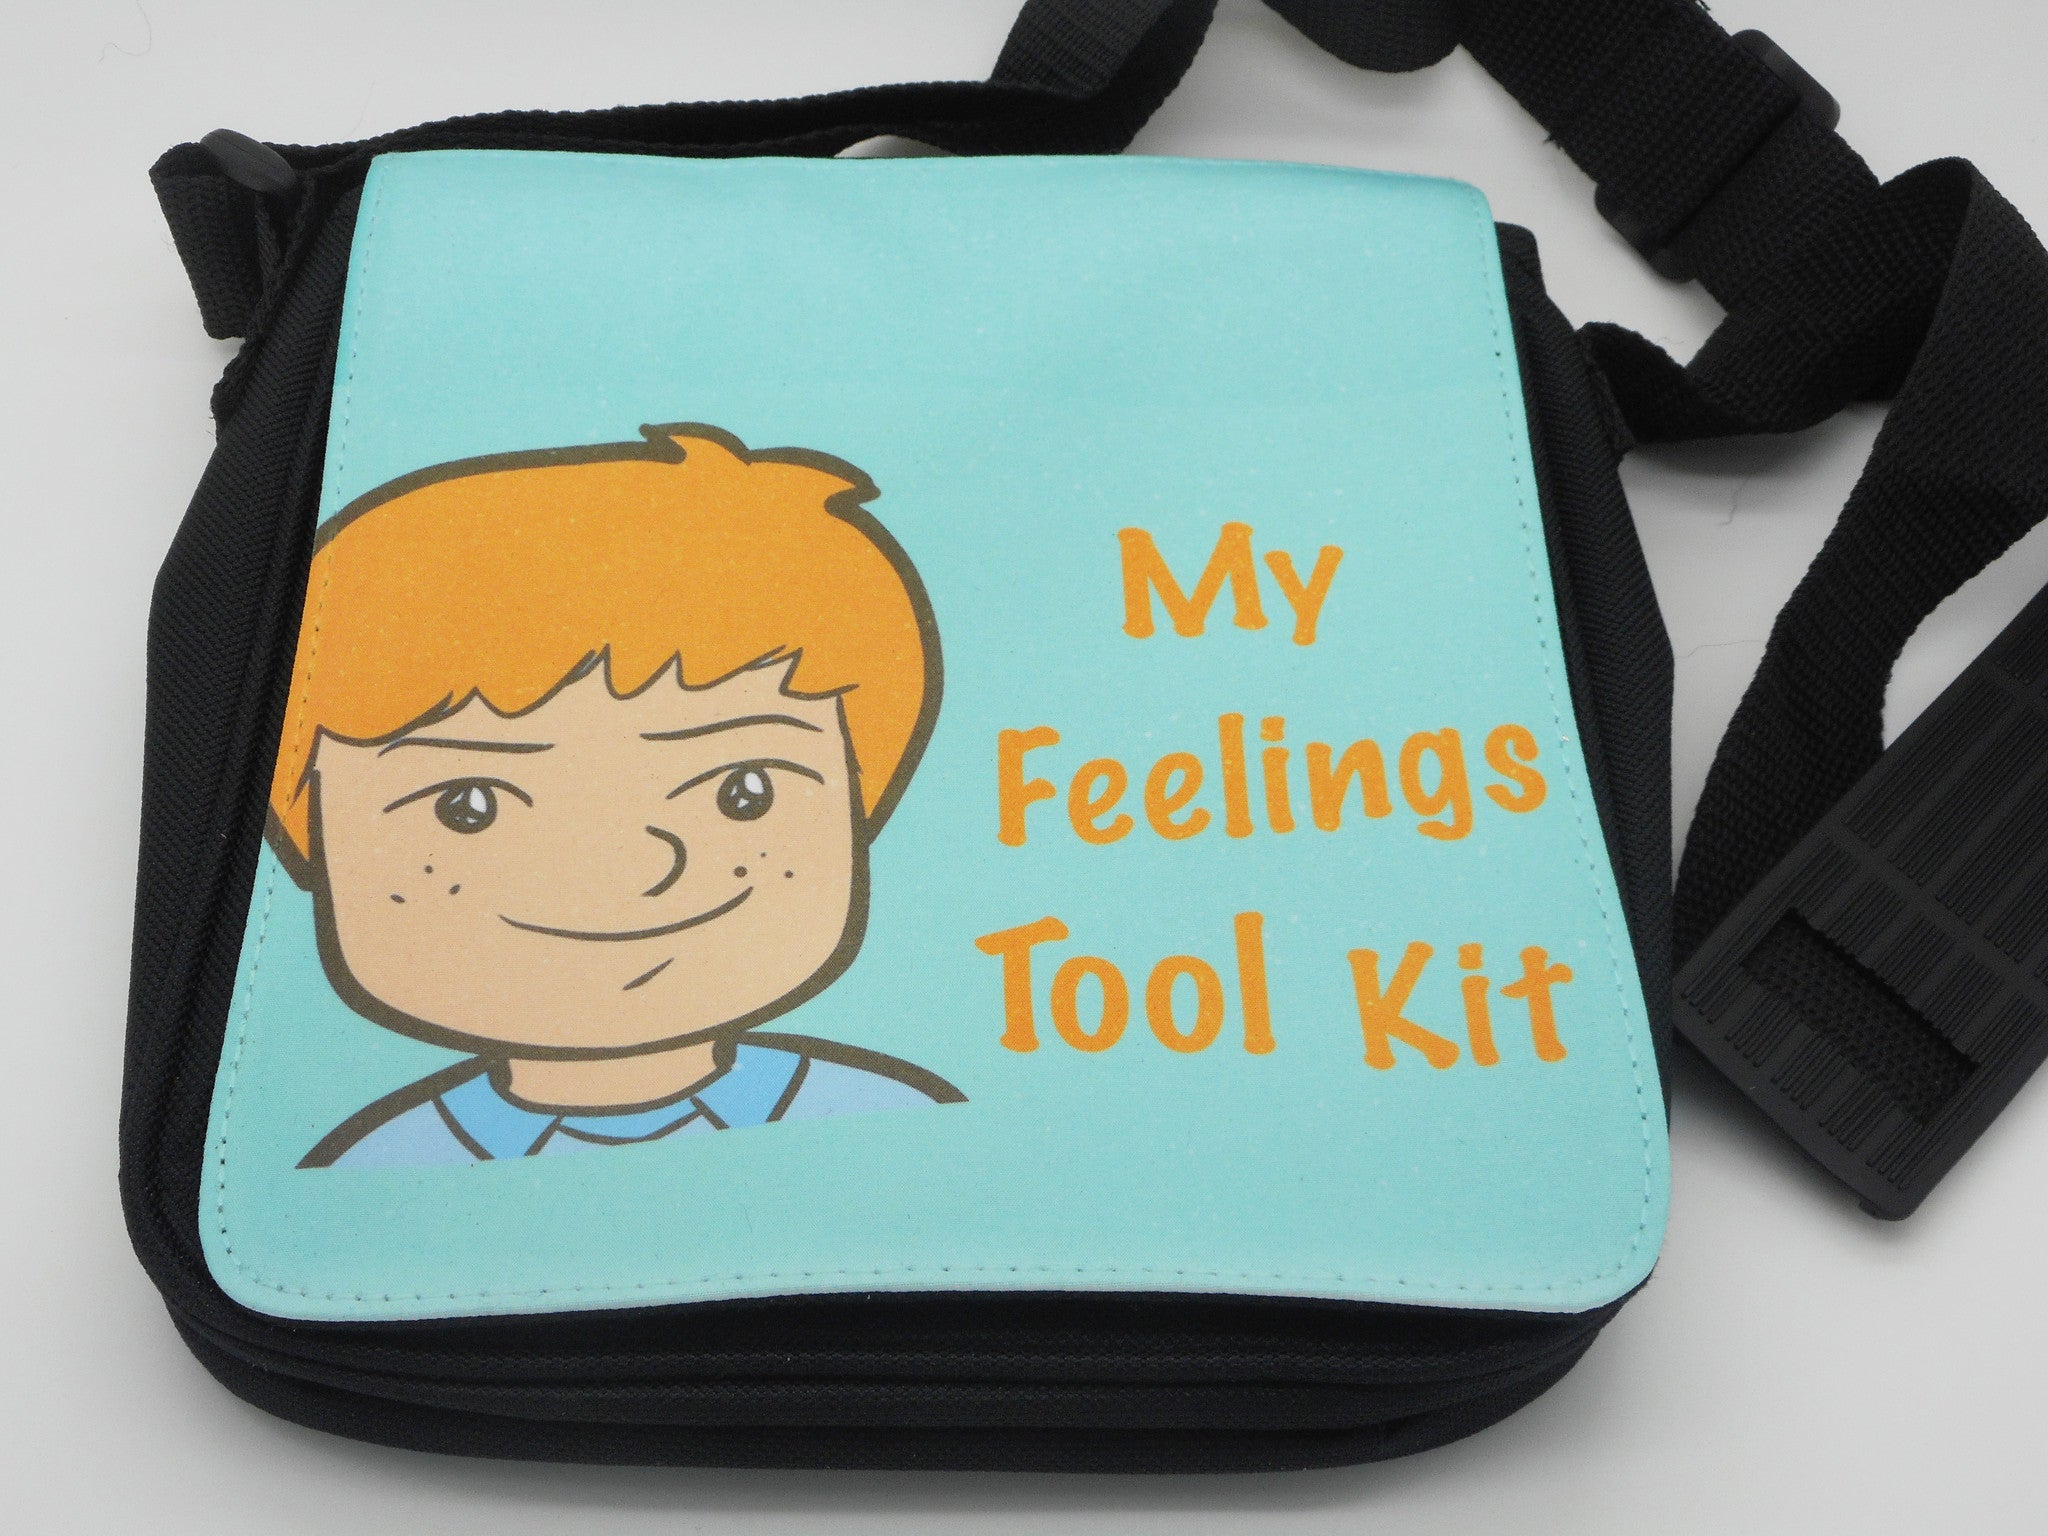 My Feelings Tool Kit Shoulder Bag - George (SEN)